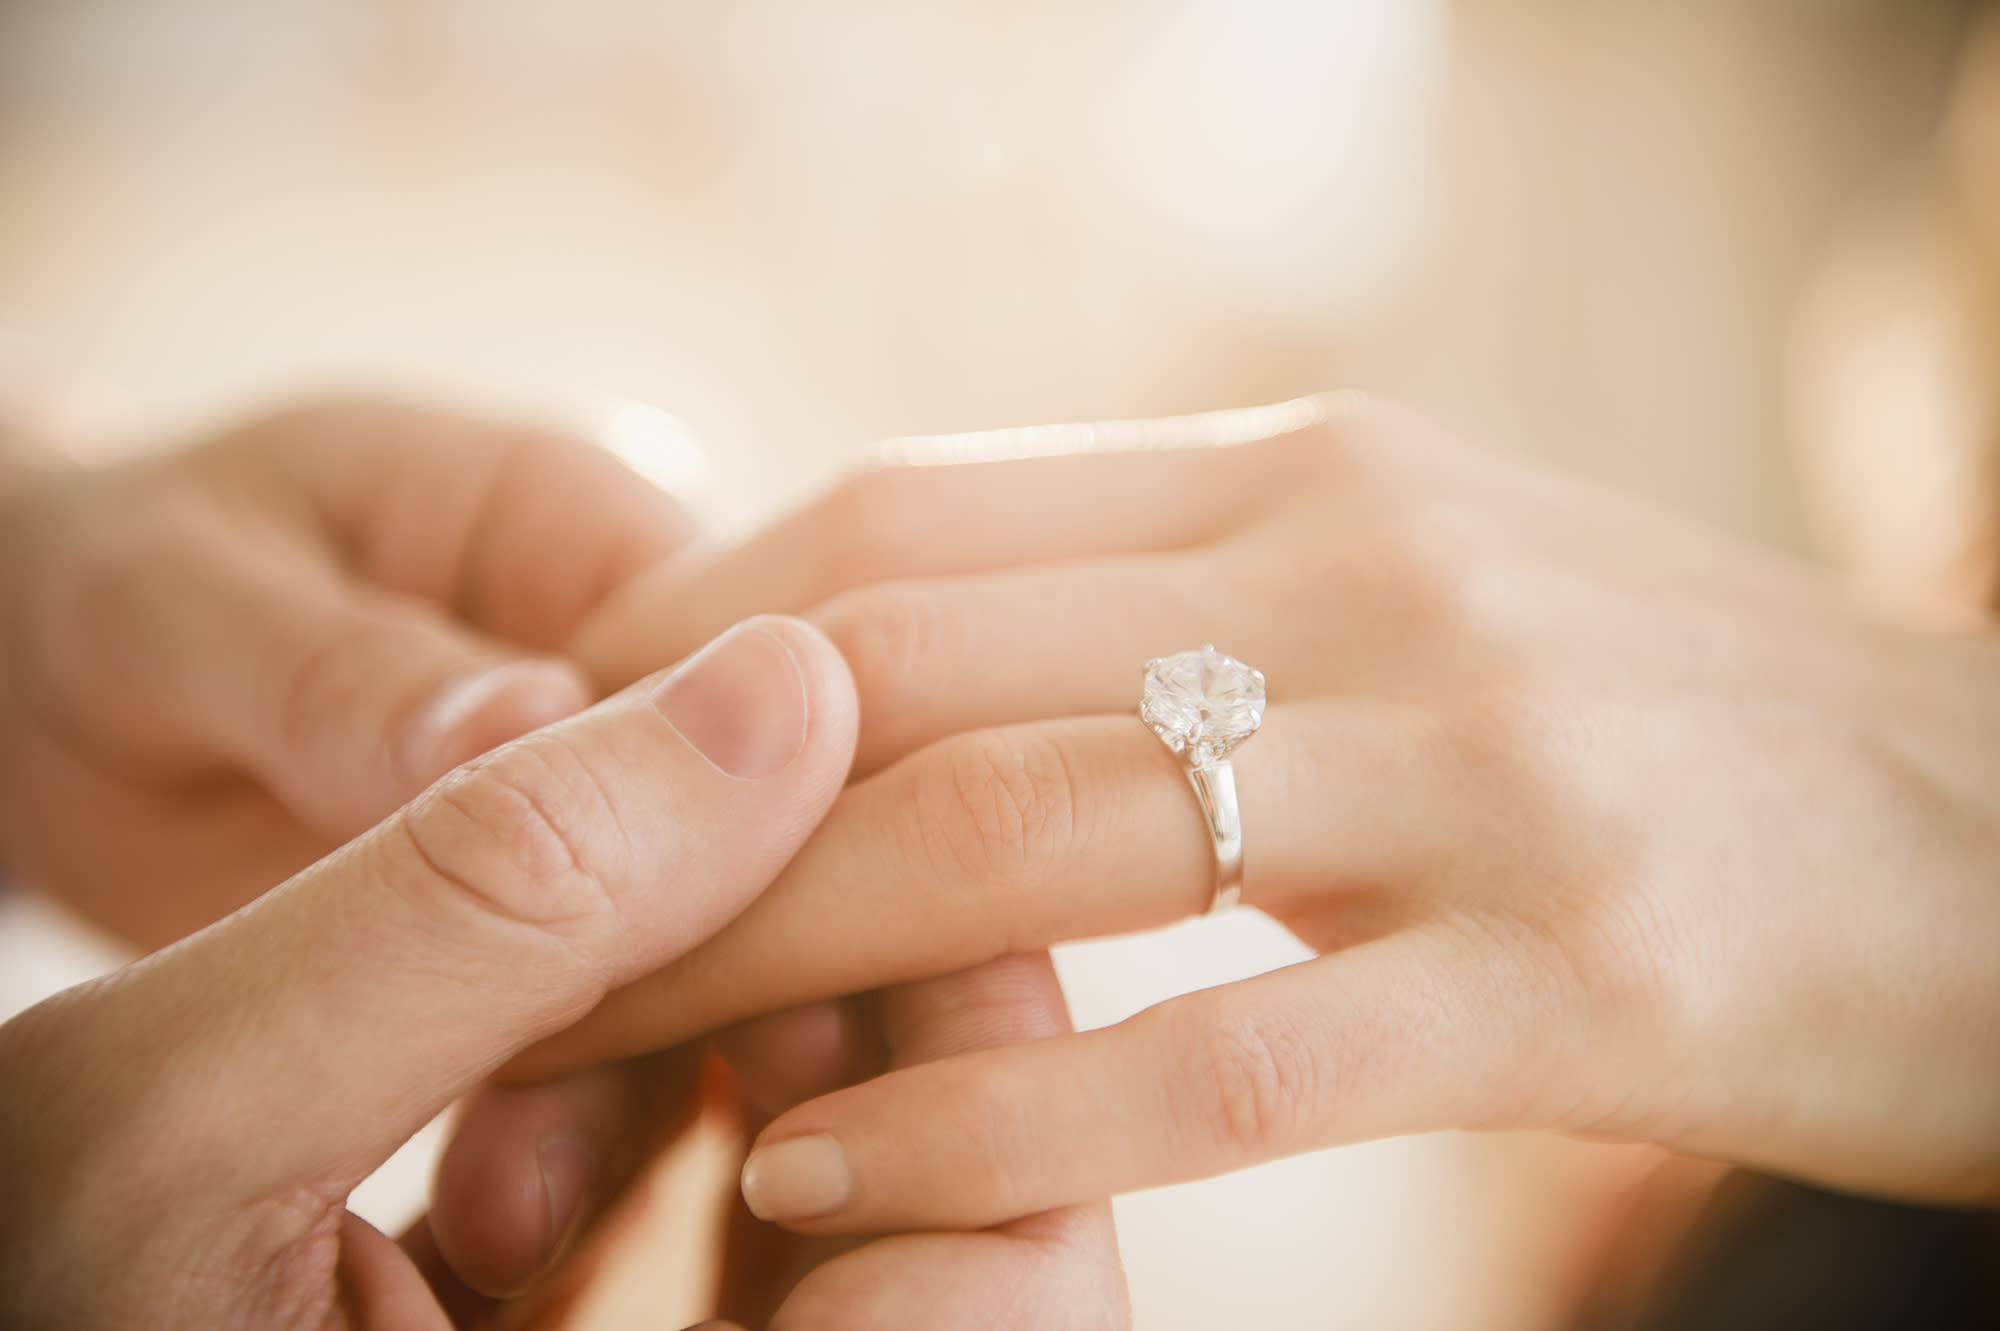 Woman Steps in for Cousin's Proposal Photo Because She's the One With the Fresh Manicure